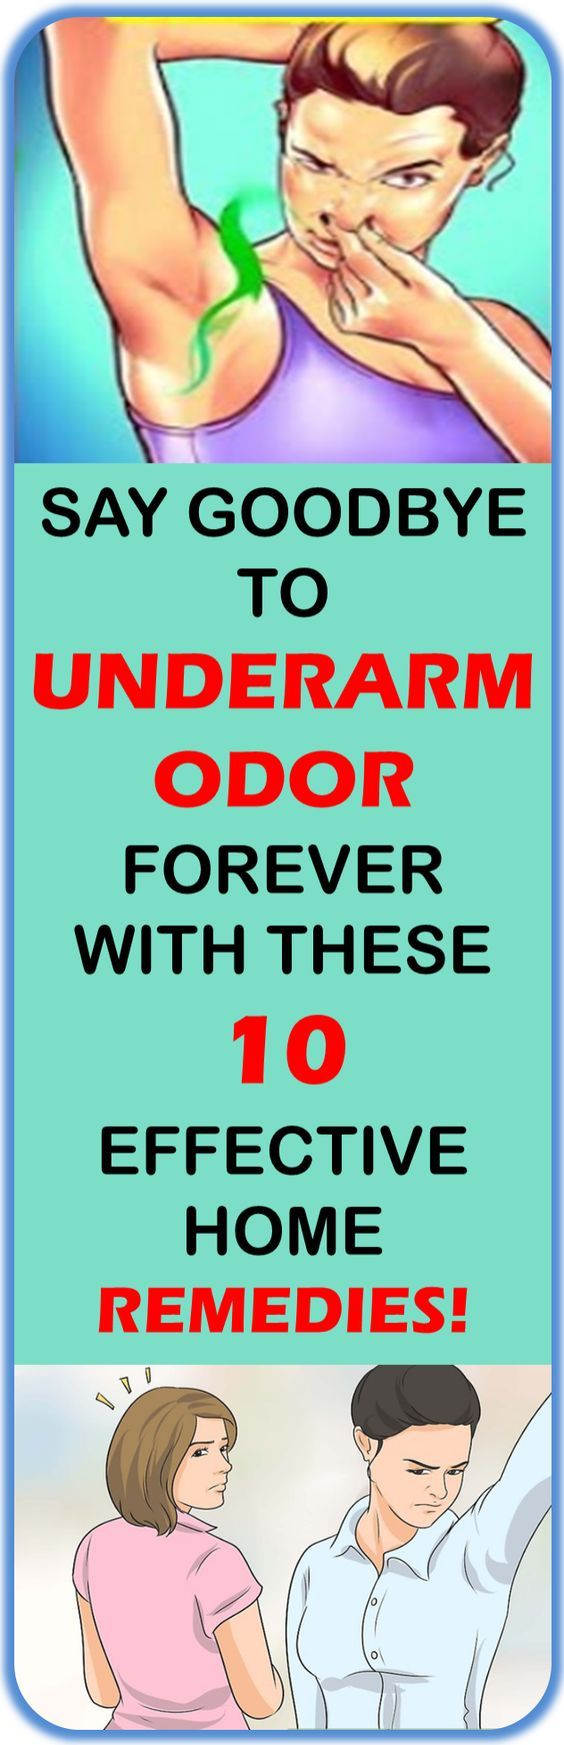 SAY GOODBYE TO UNDERARM ODOR FOREVER WITH THESE 10 EFFECTIVE HOME REMEDIES!